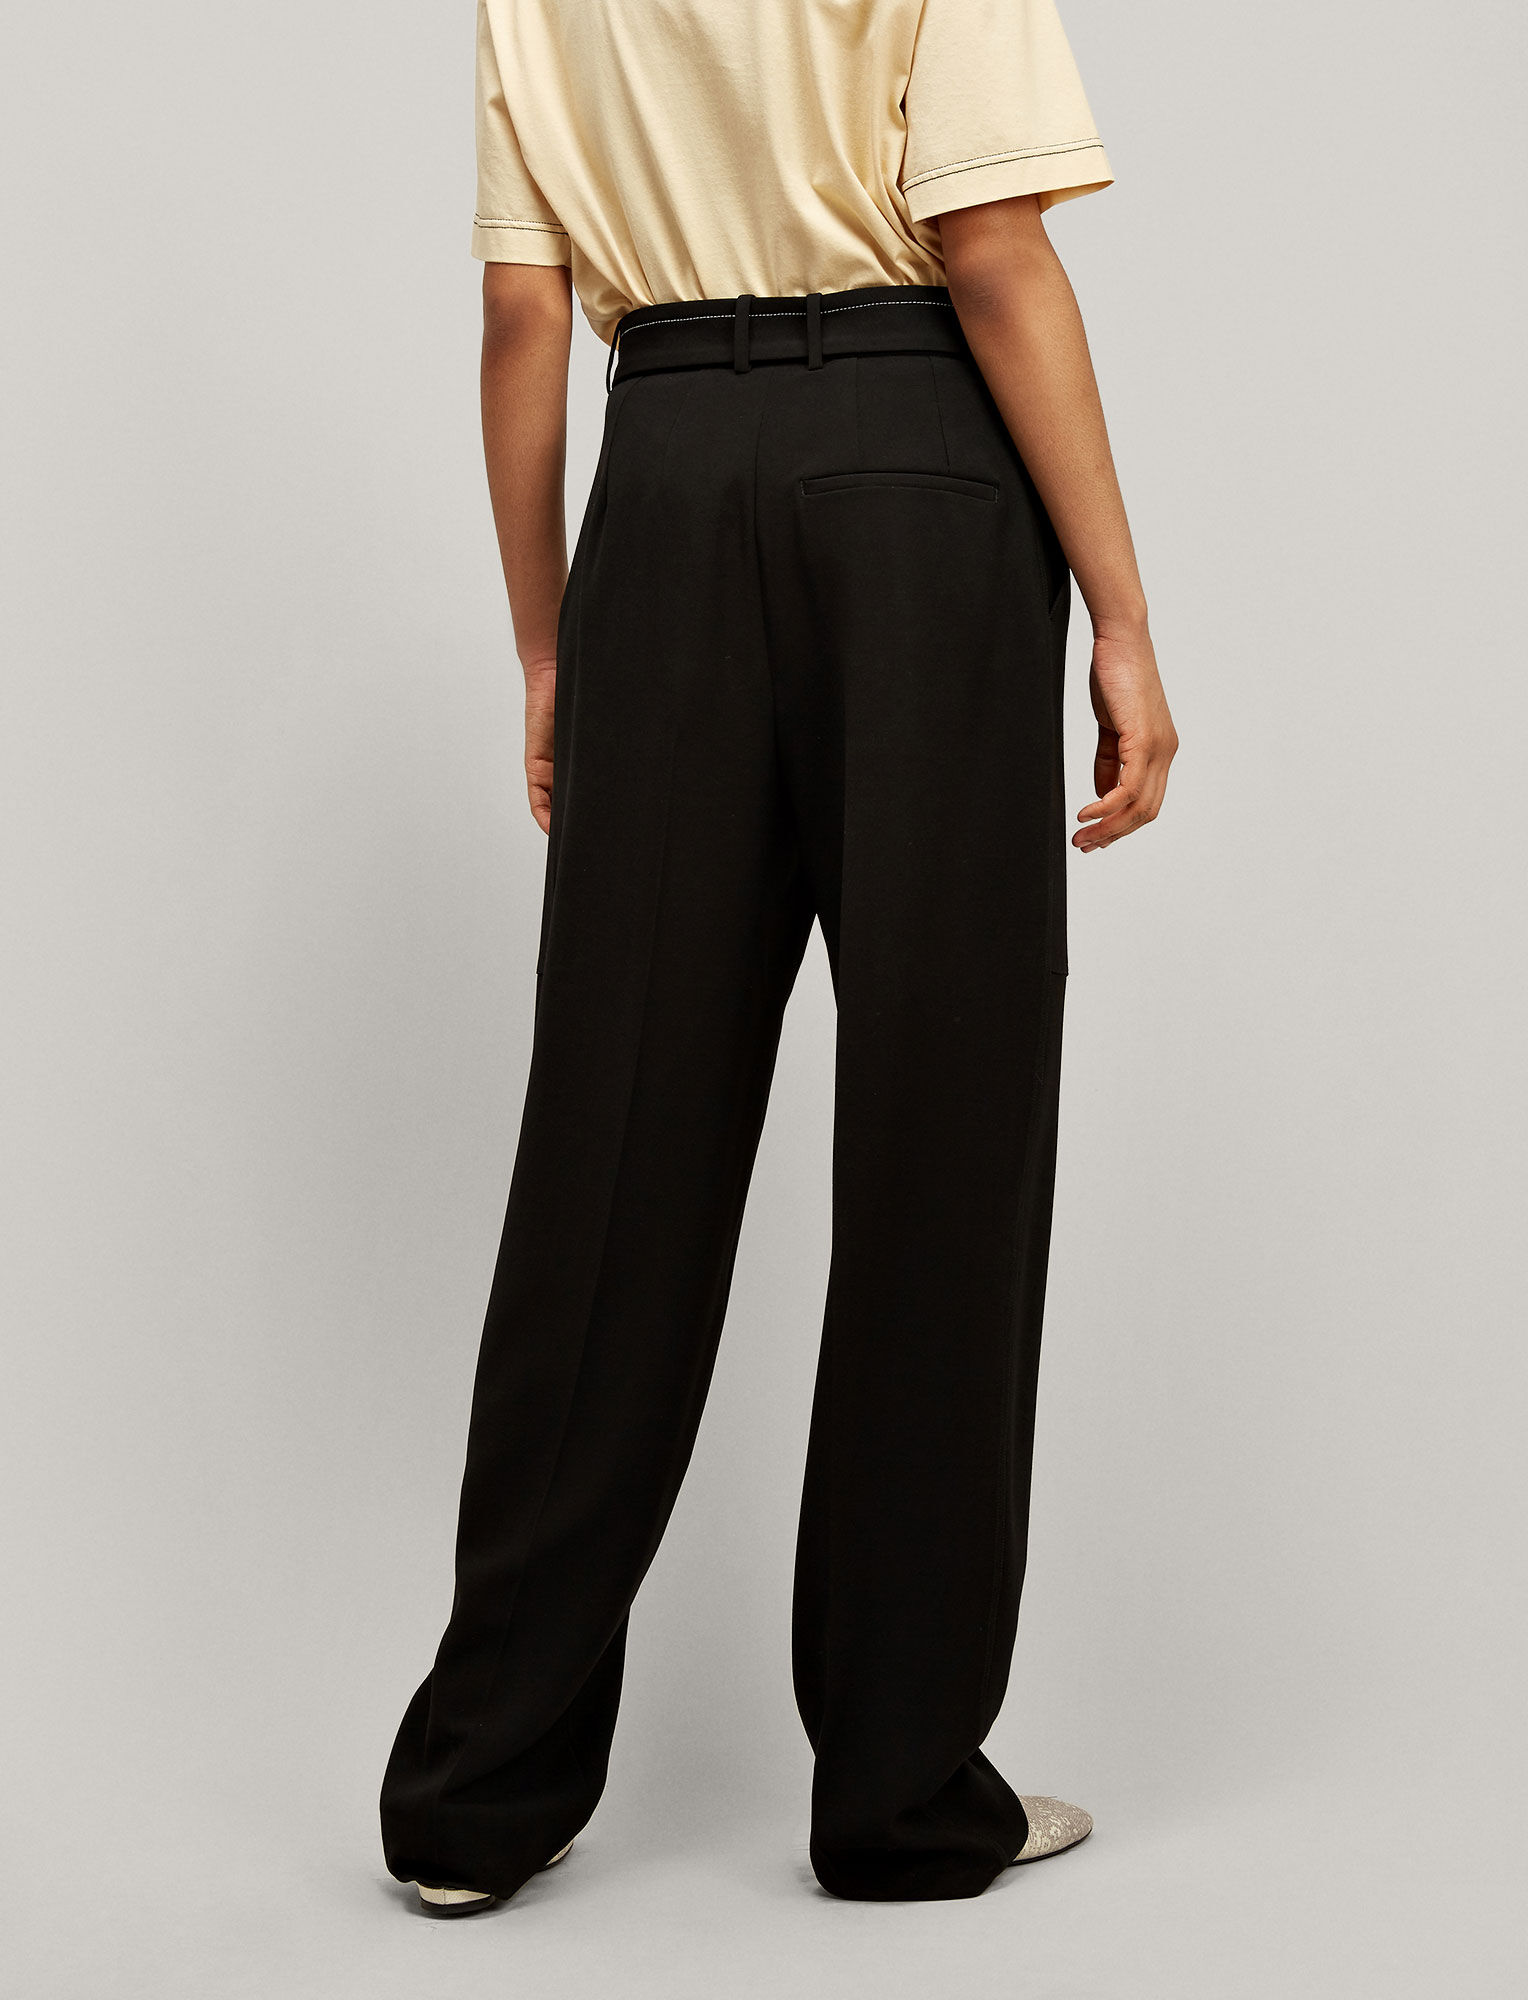 Joseph, Terry Fluid Twill Trousers, in BLACK